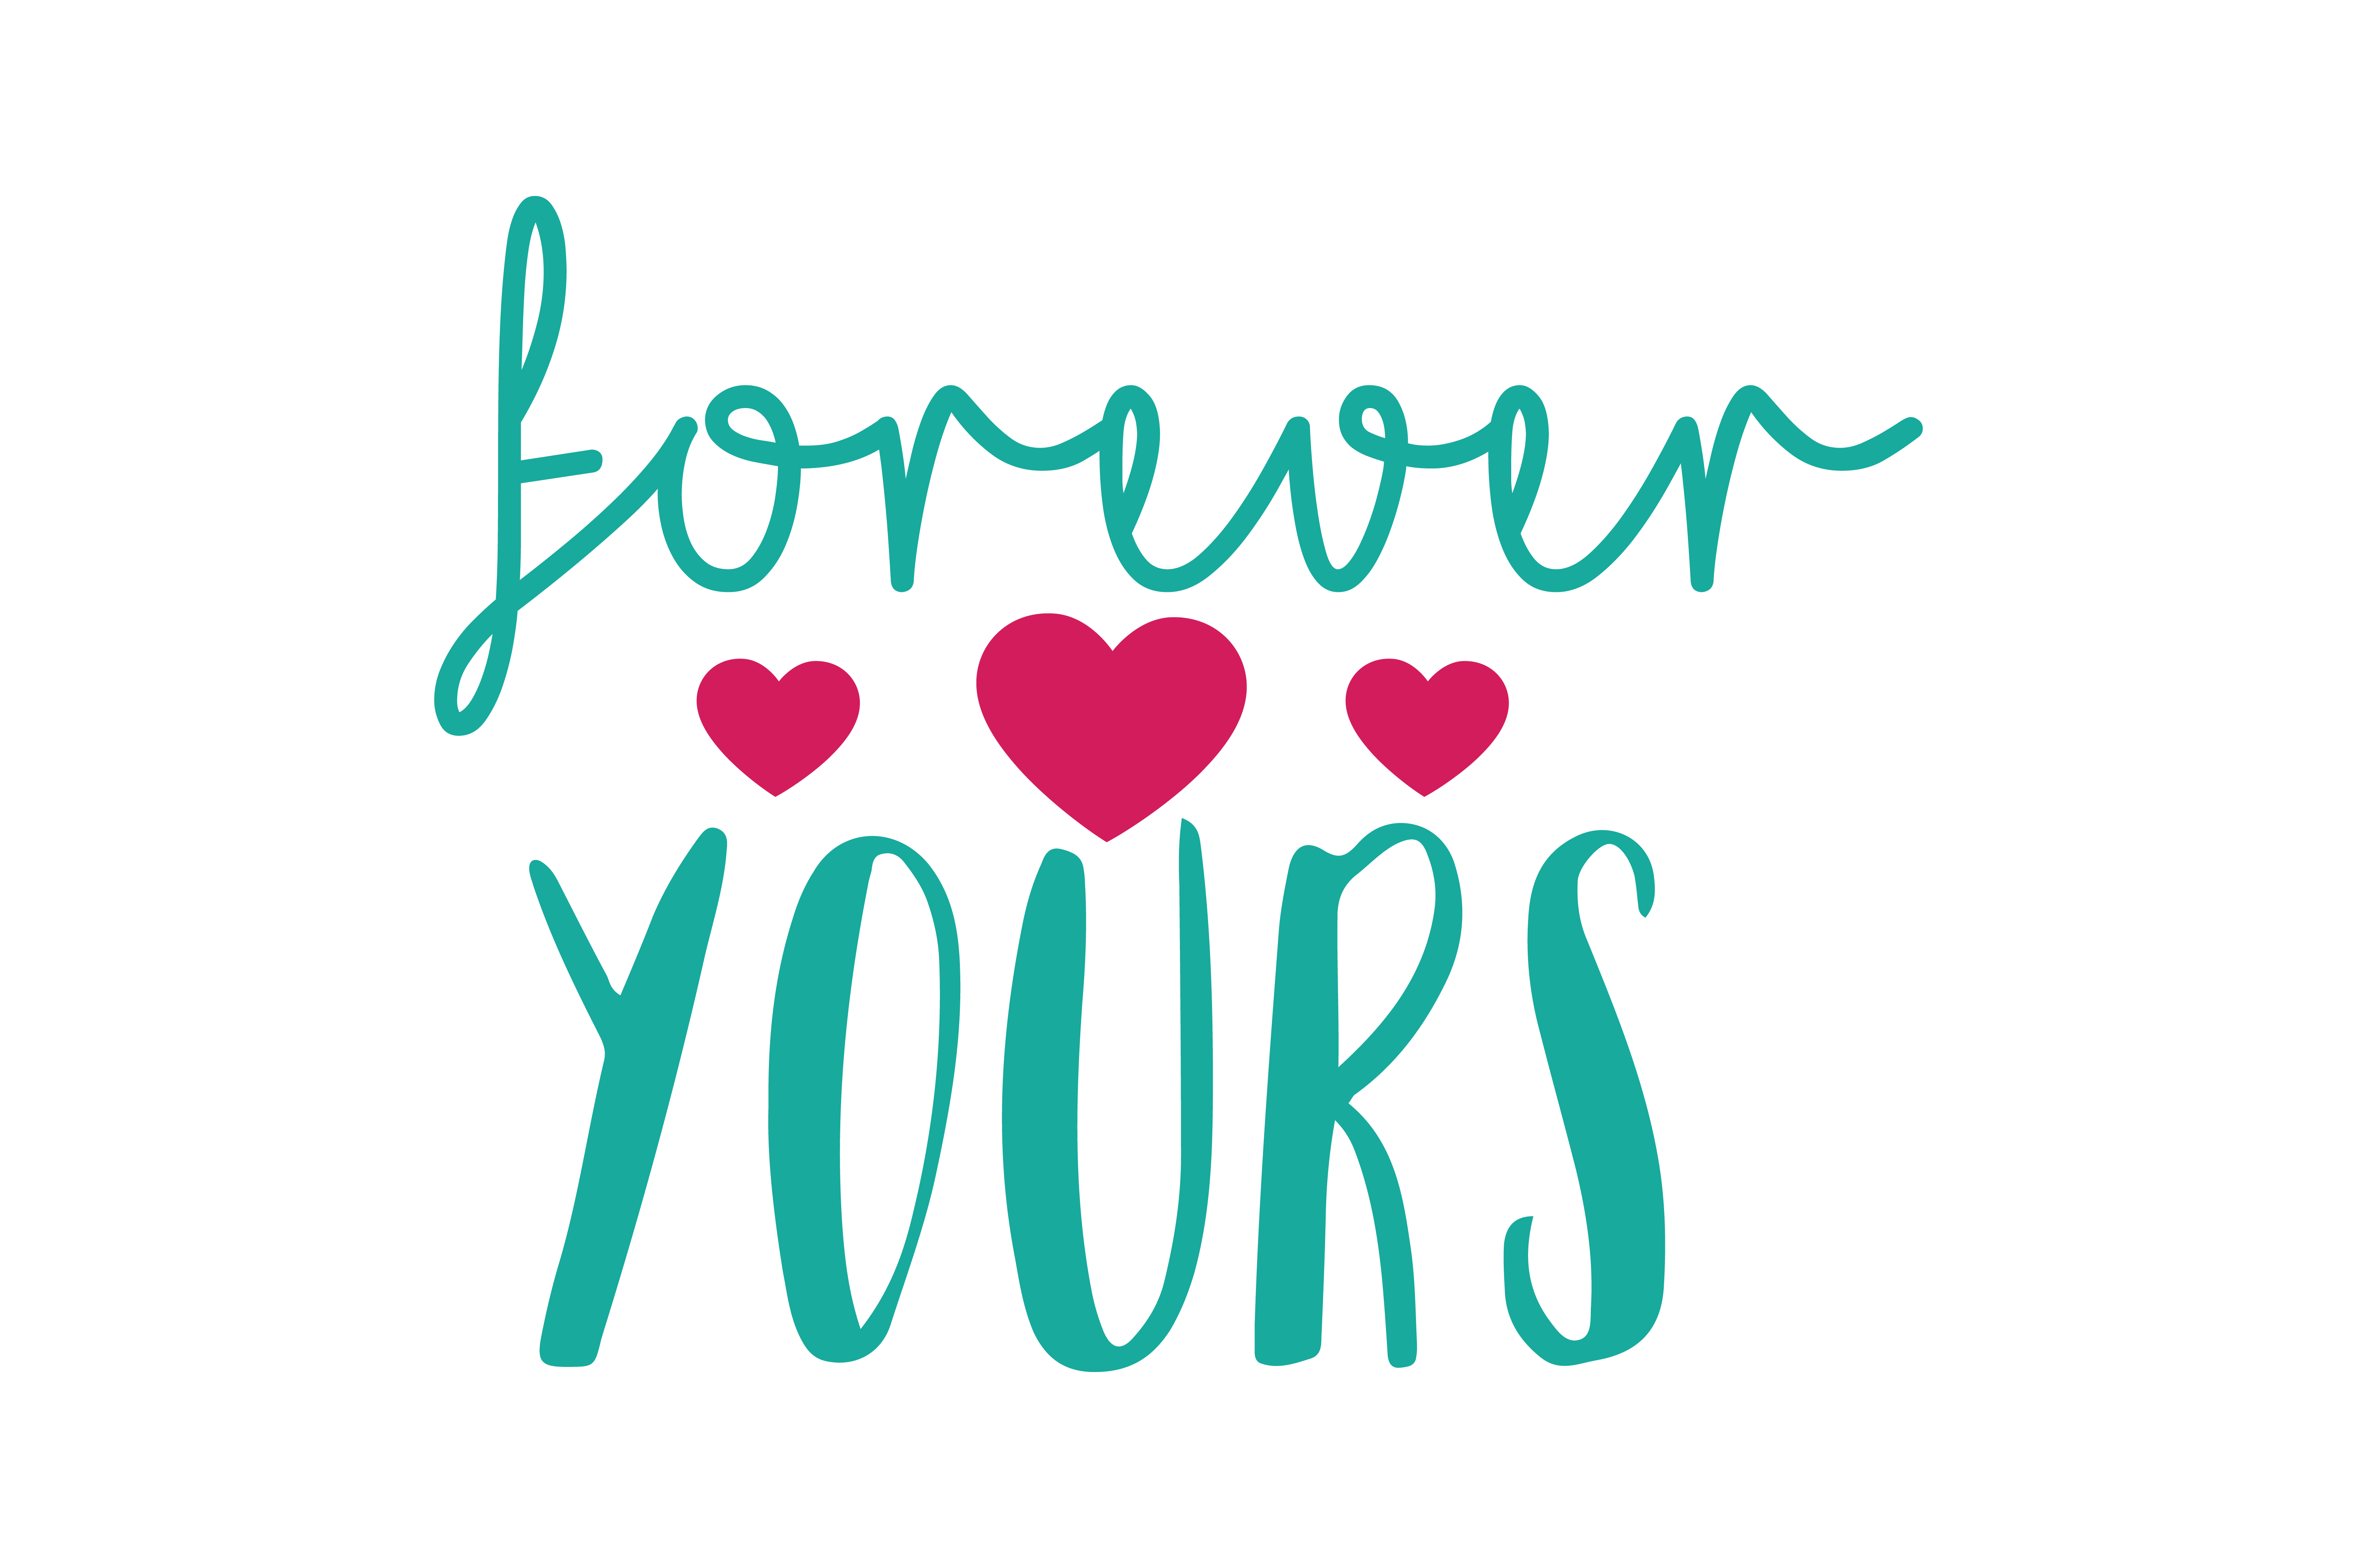 Download Free Forever Yours Quote Svg Cut Graphic By Thelucky Creative Fabrica for Cricut Explore, Silhouette and other cutting machines.